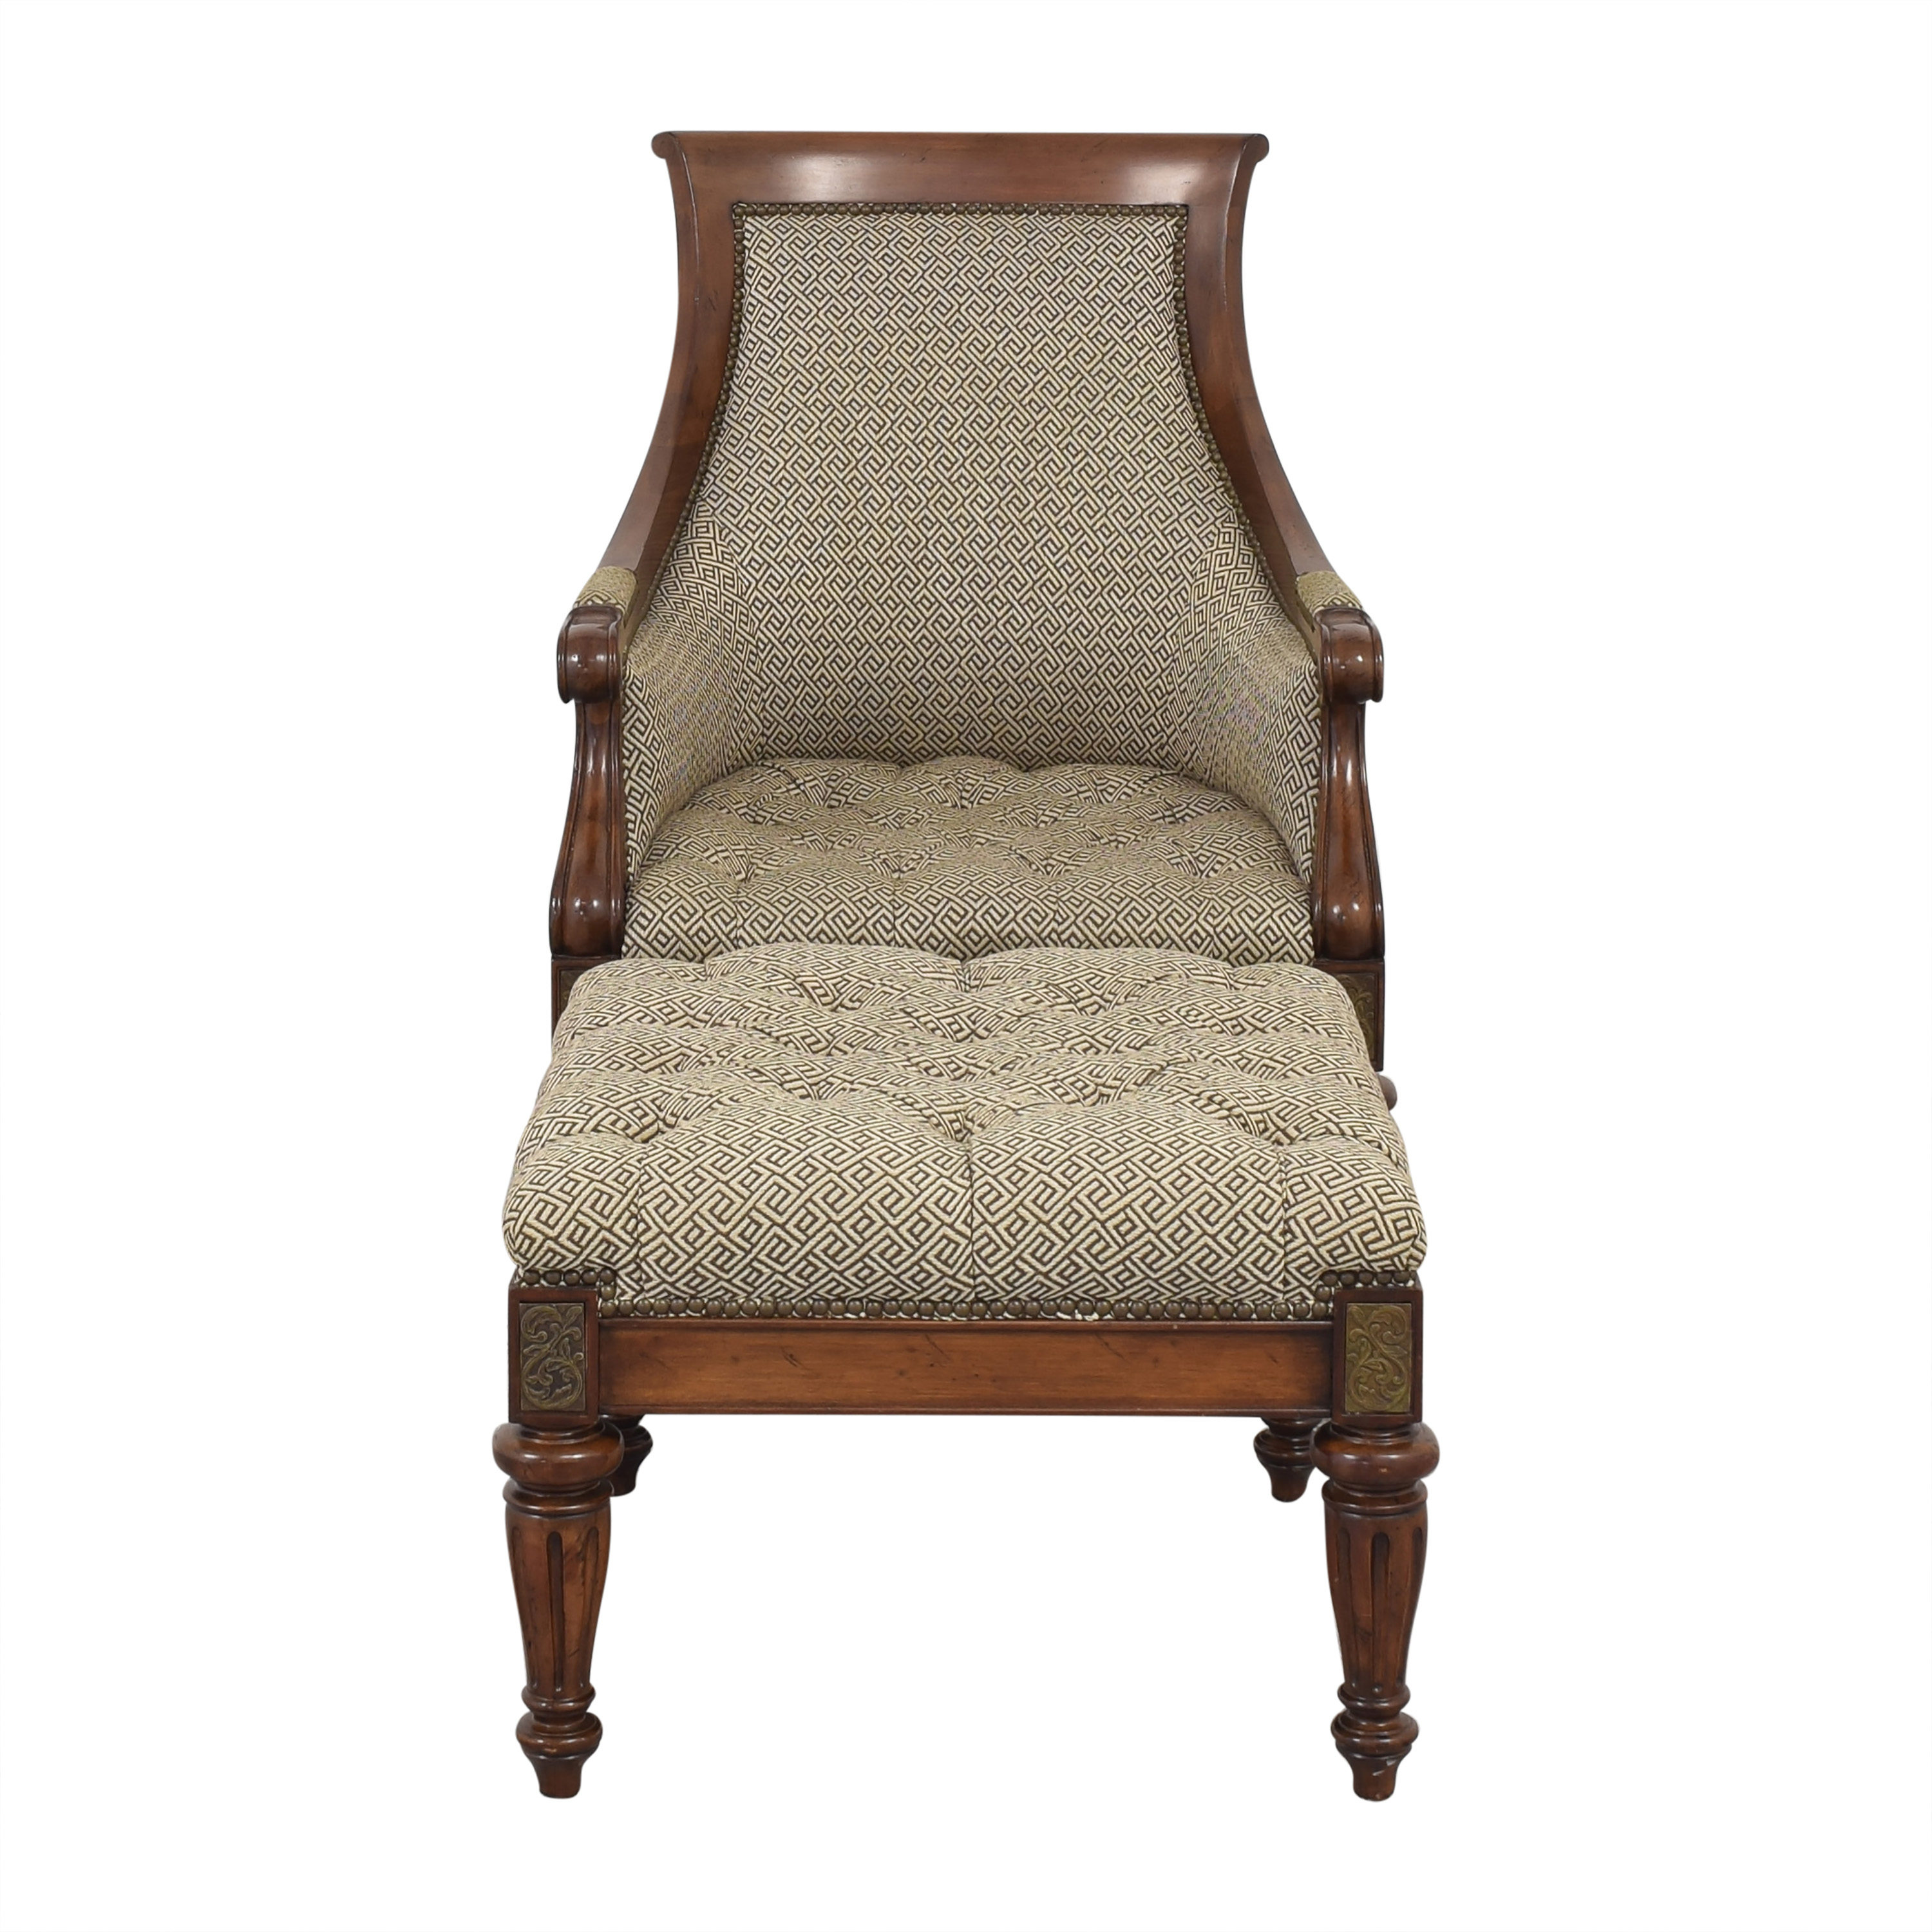 Thomasville Thomasville Accent Chair and Ottoman ma